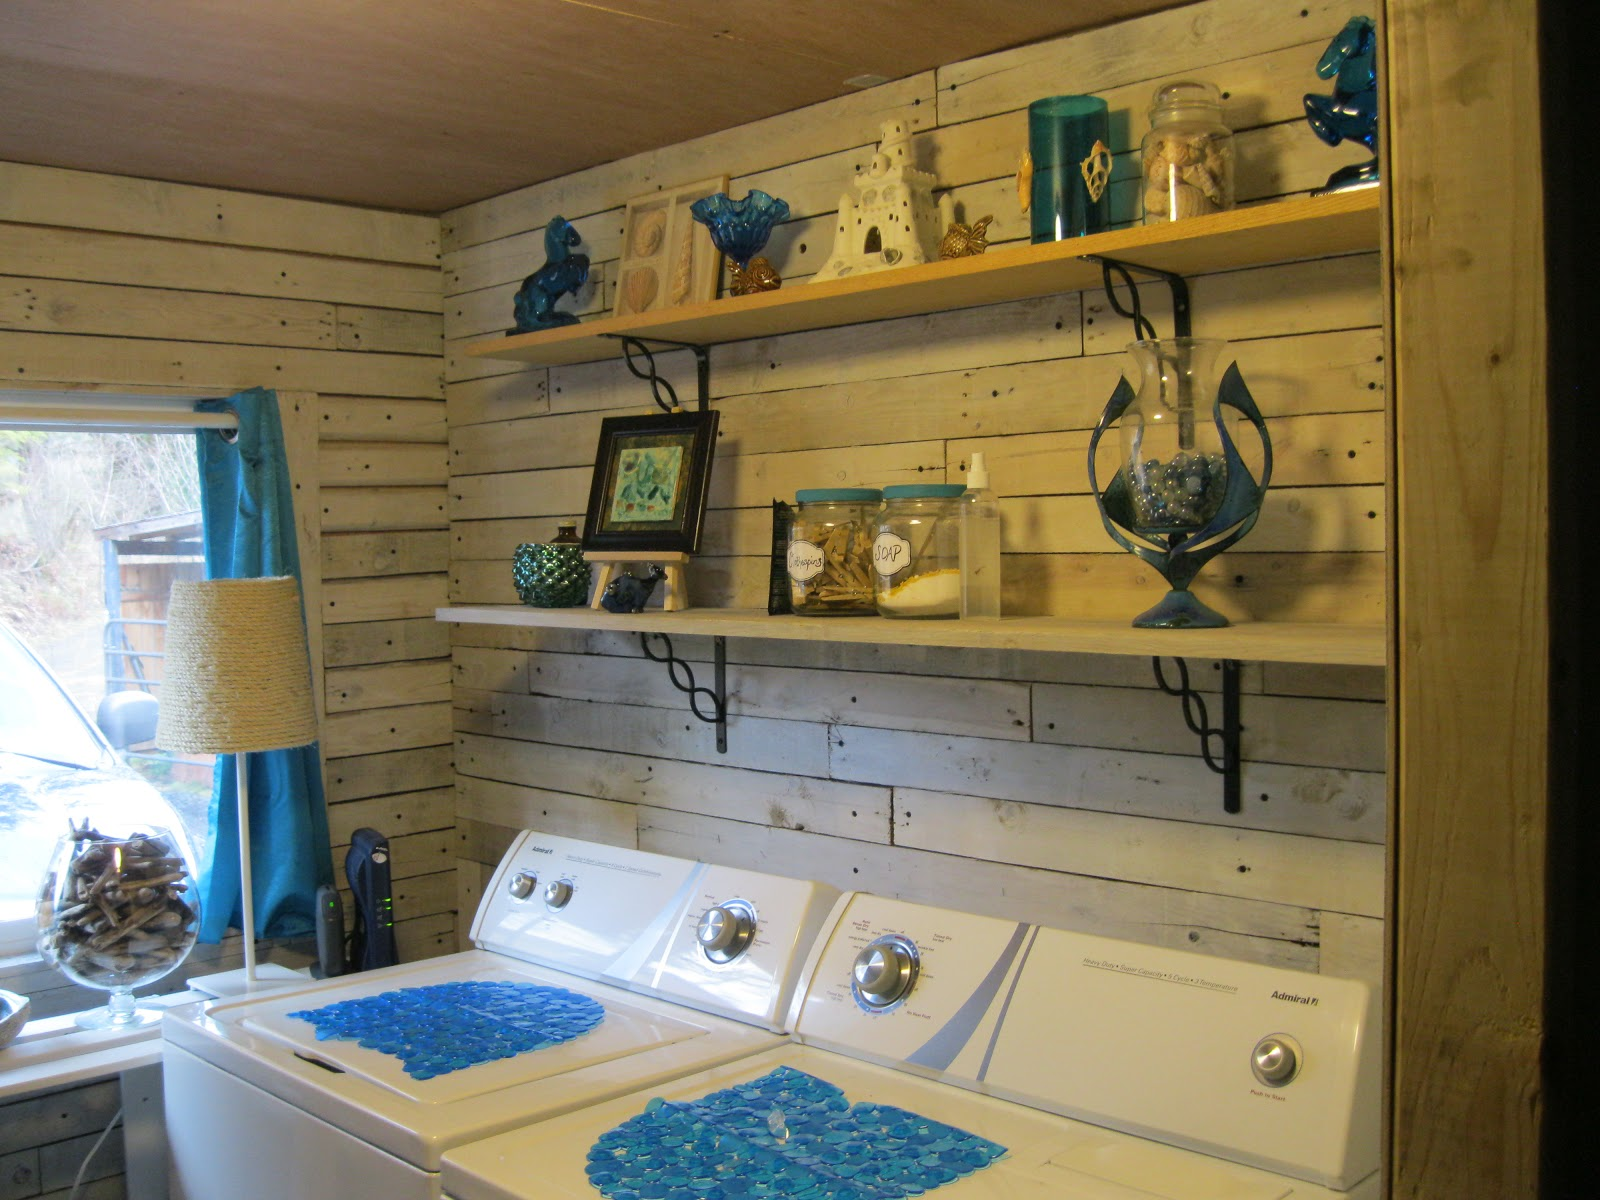 Laundry room makeover ideas for your mobile home - Small space makeovers ideas ...